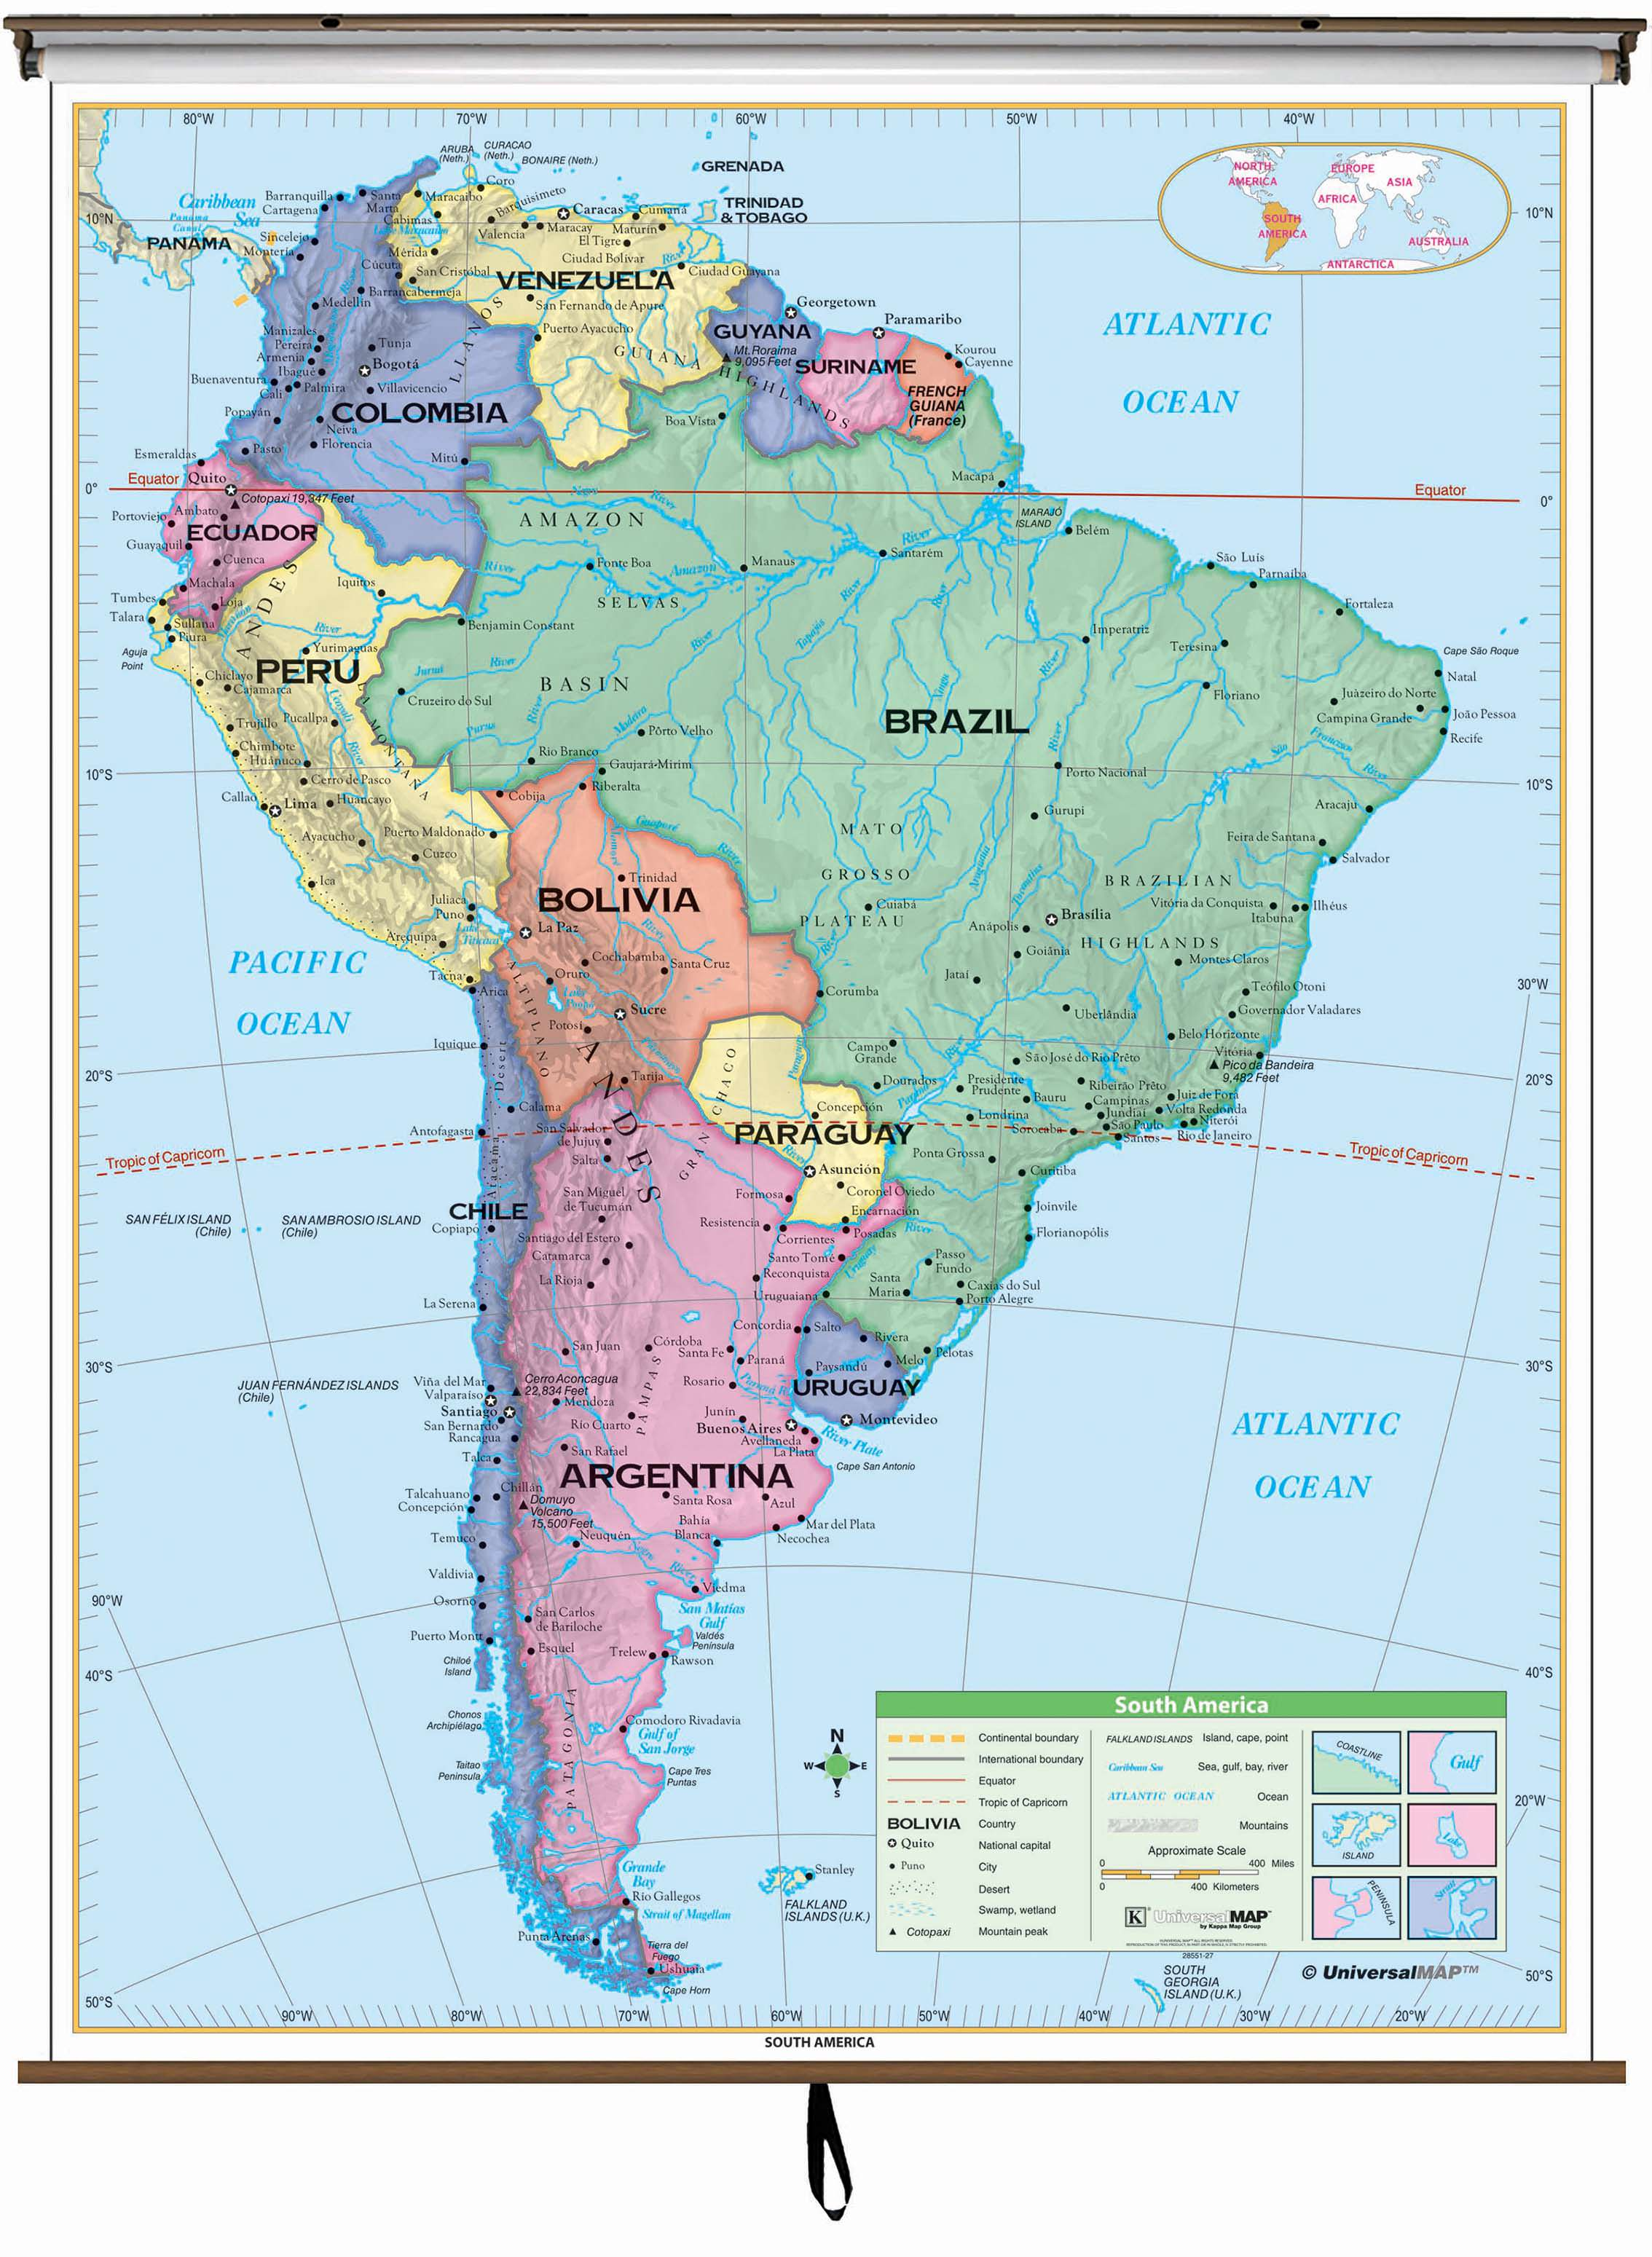 South America Essential Clroom Wall Map on Roller w/ Backboard ... on